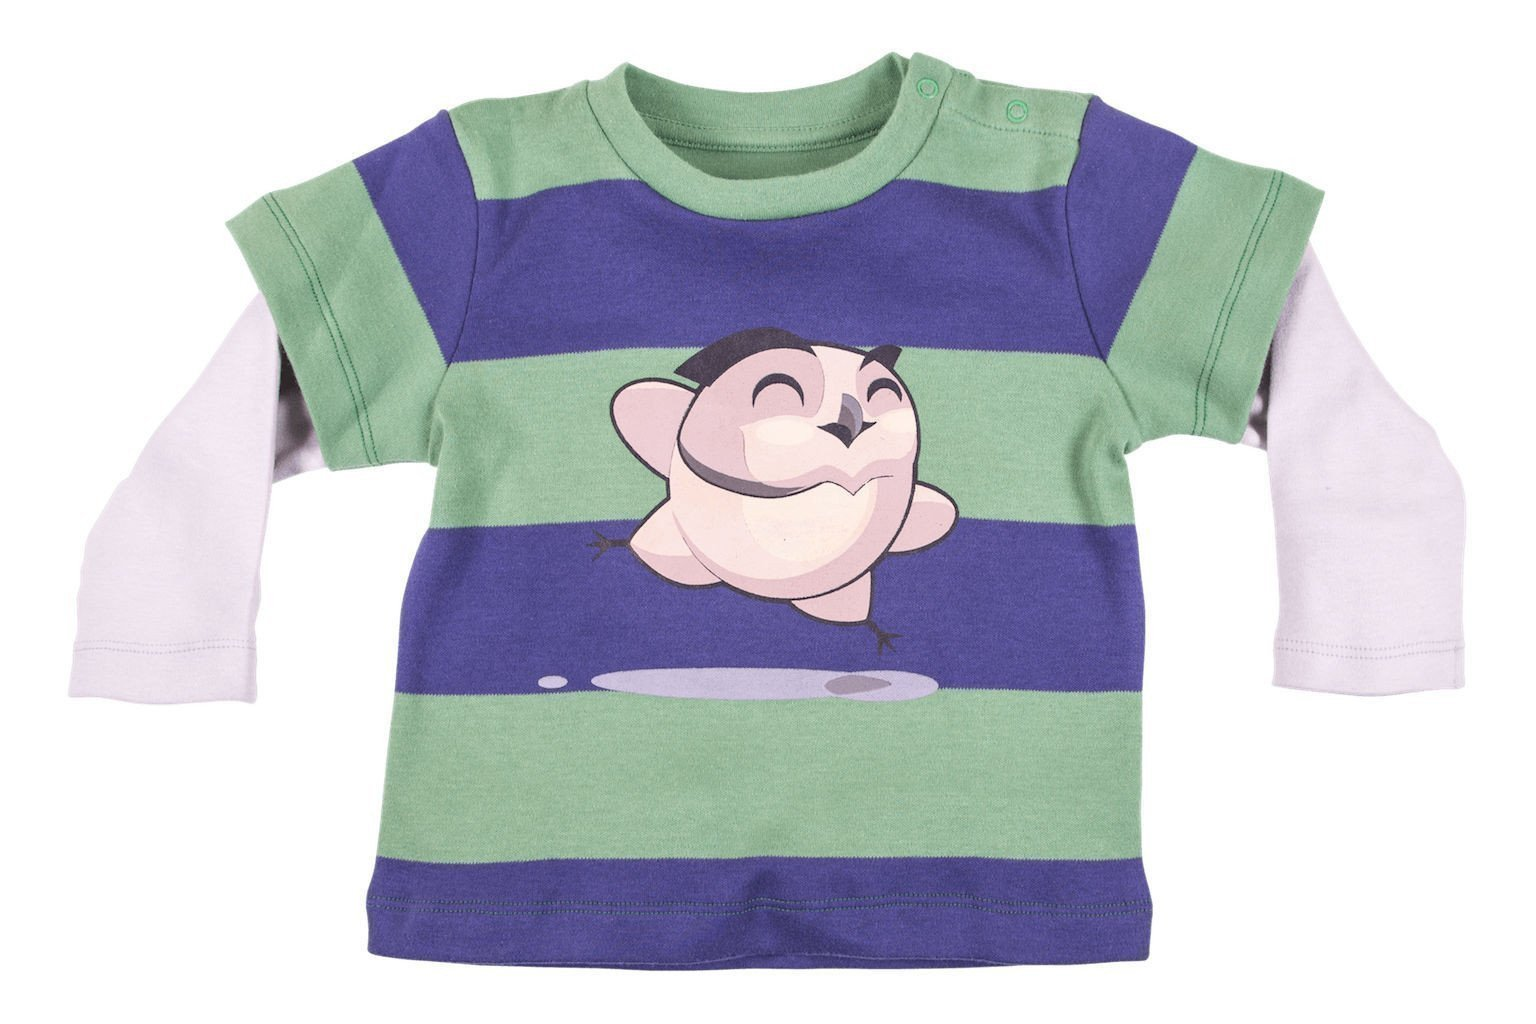 Boys Printed T-Shirt - HUGABUG